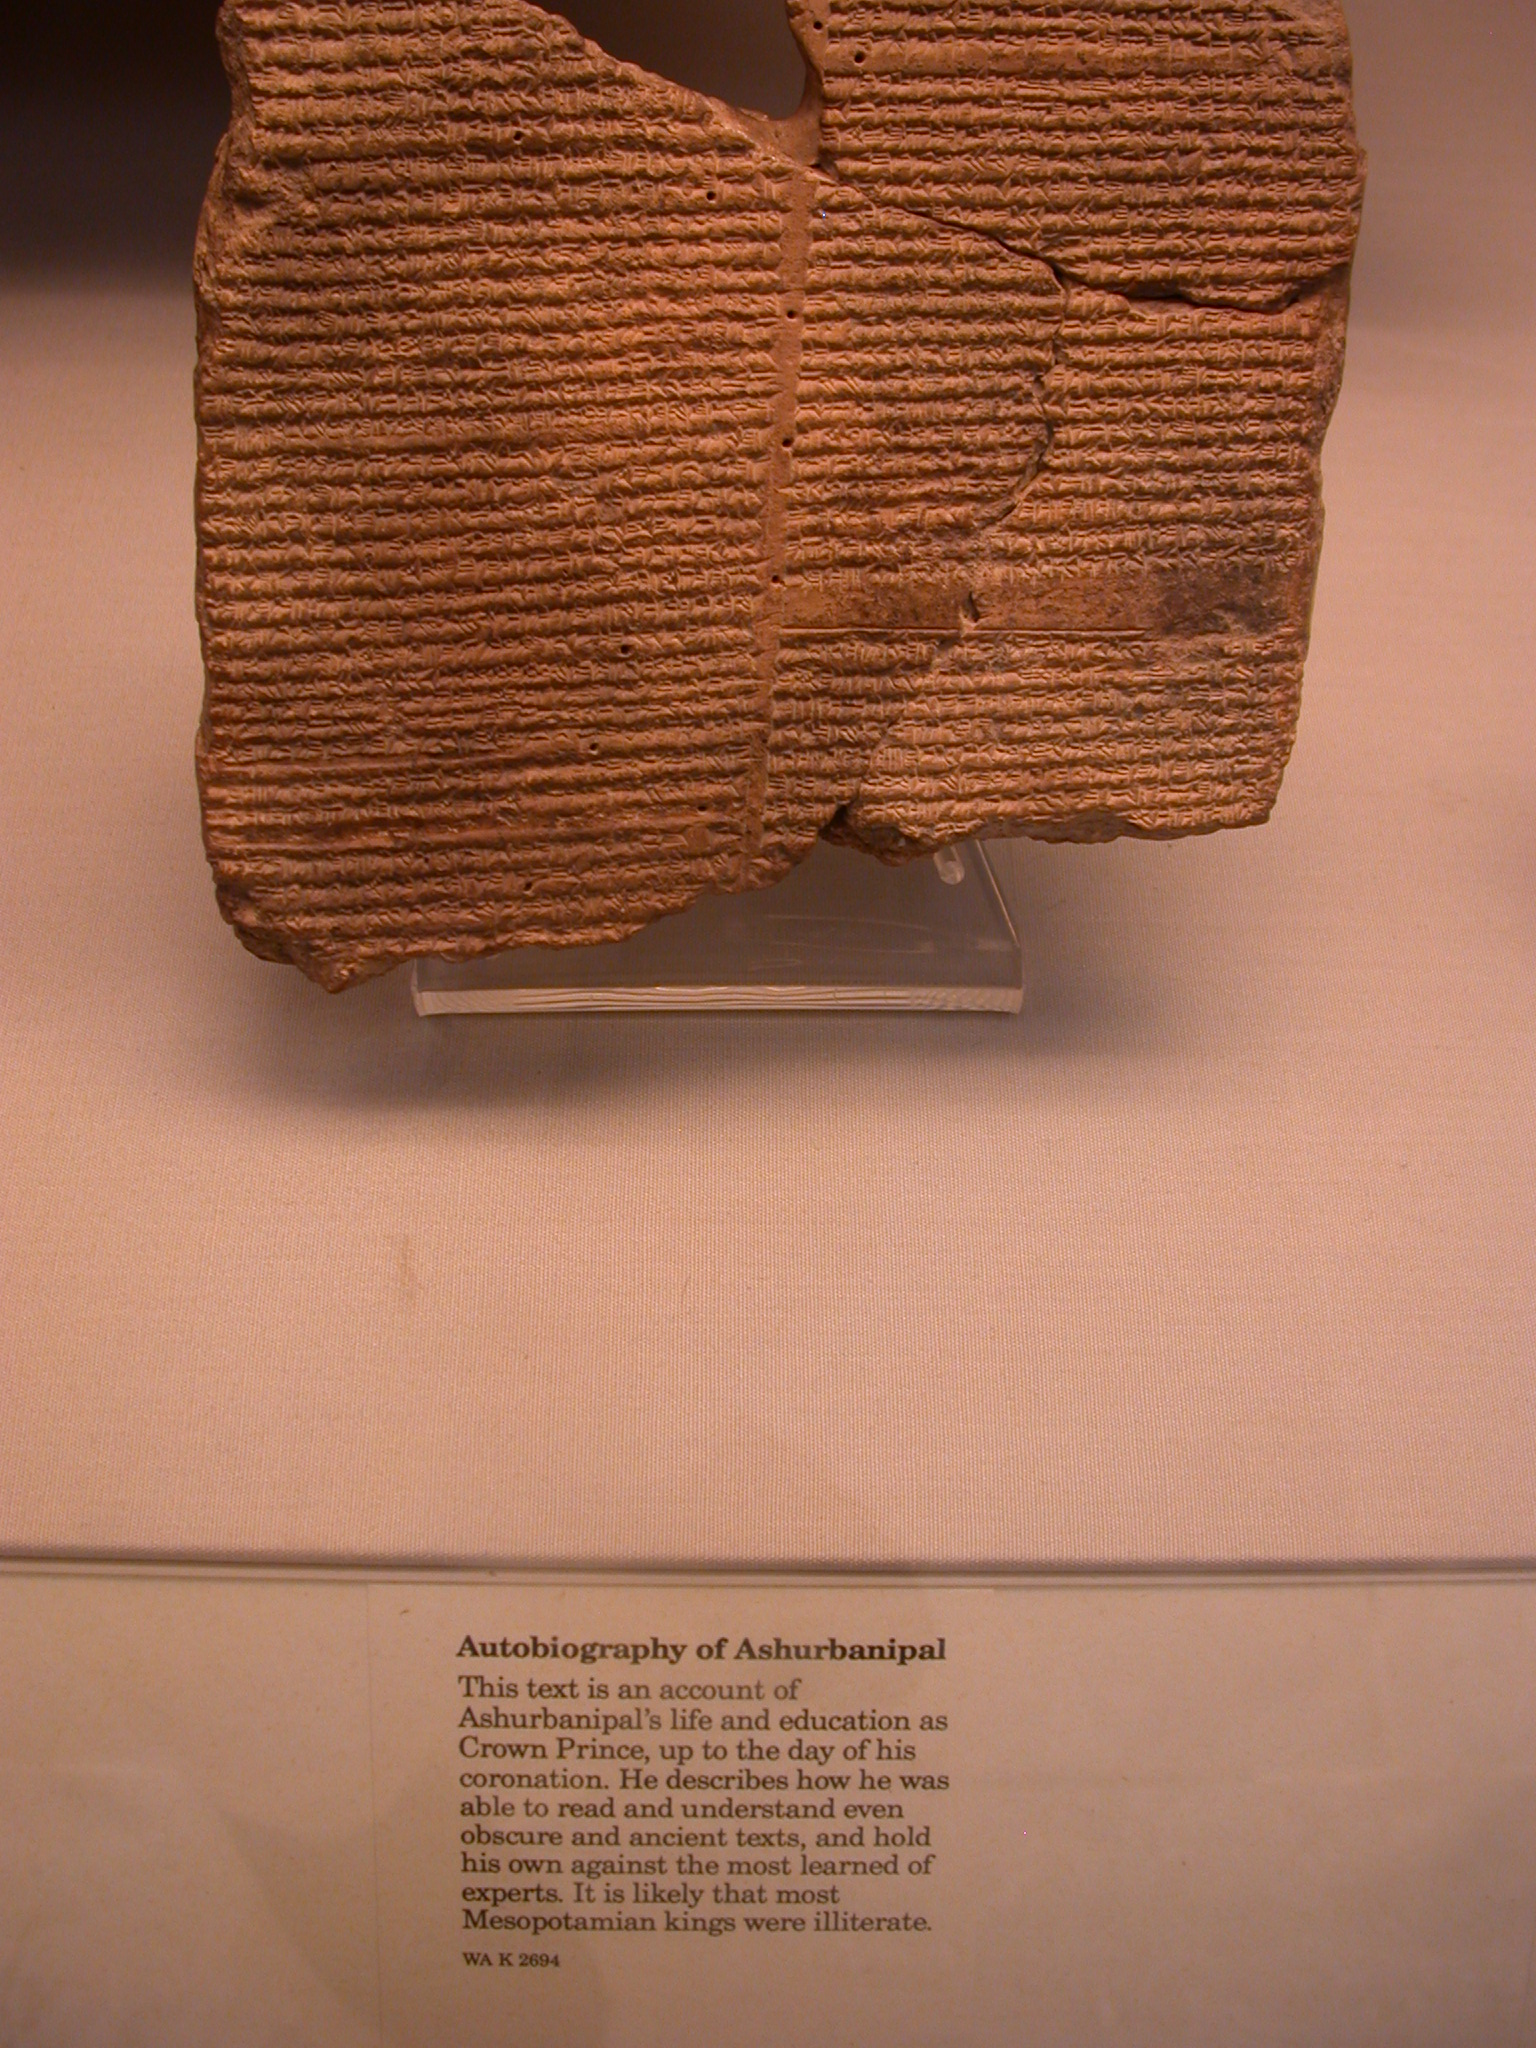 Autobiography of Ashurbanipal, Cuneiform Tablet, Assyria, in British Museum, London, England